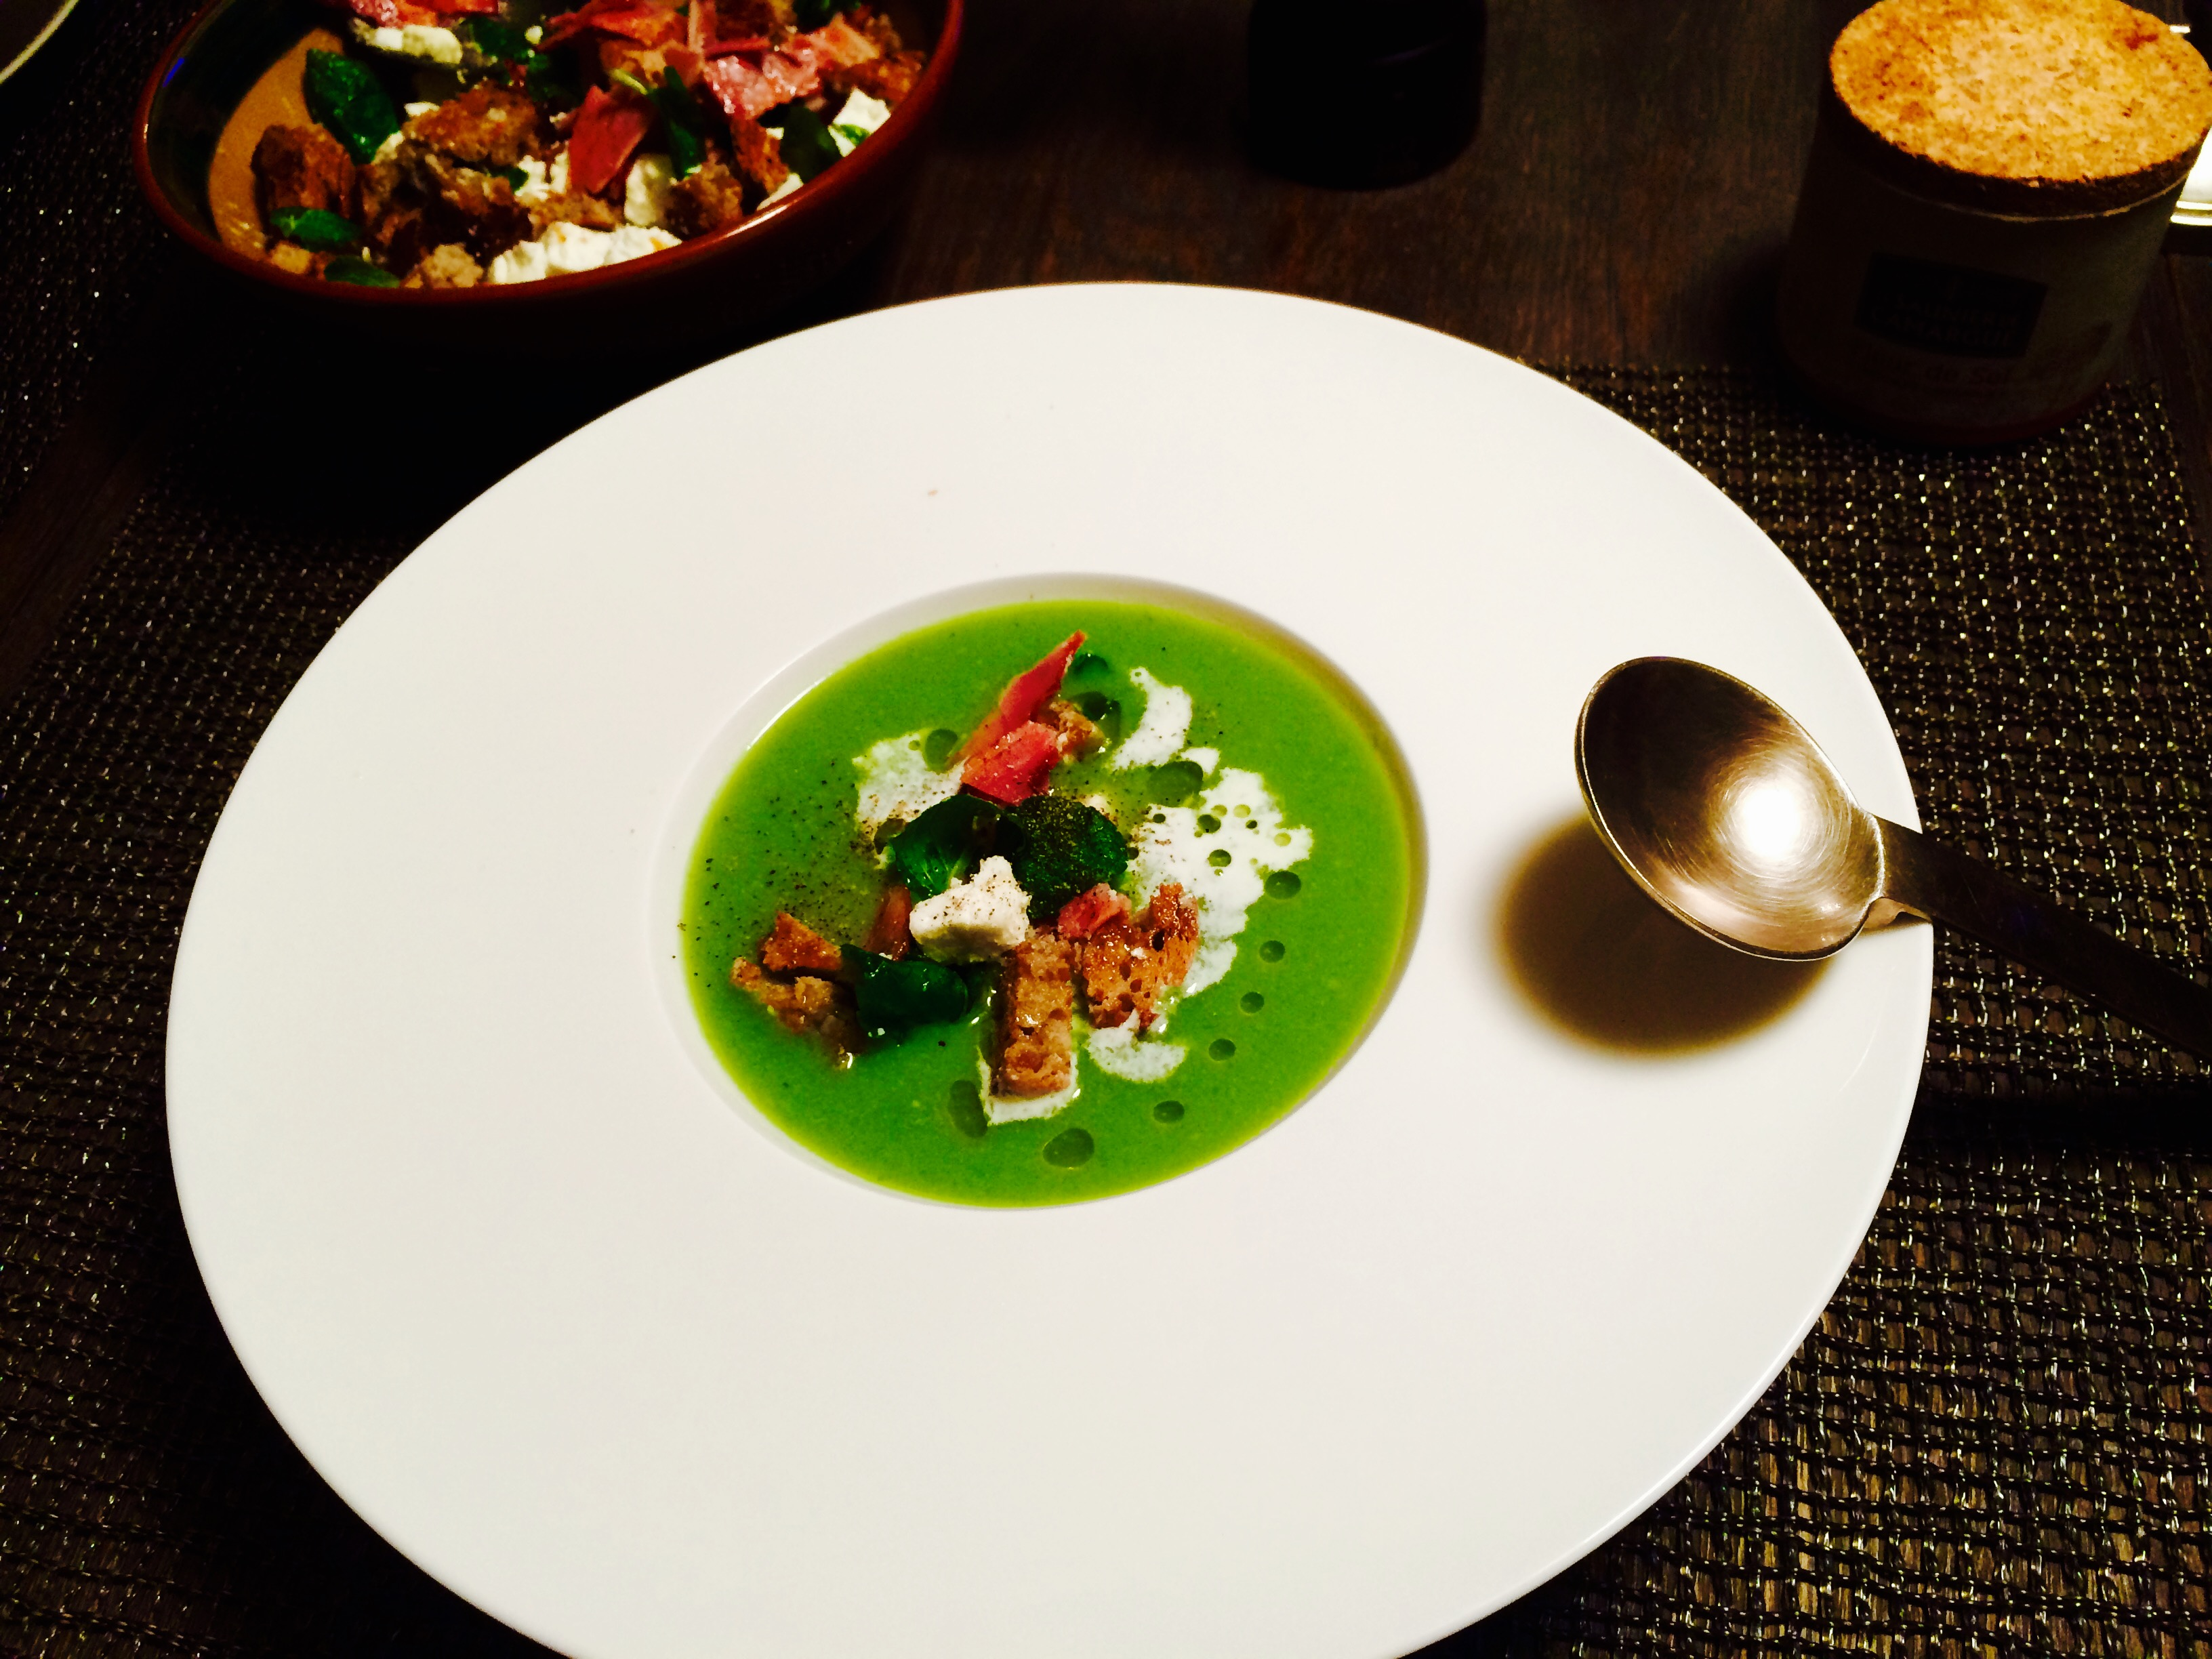 Pea soup with feta and mint